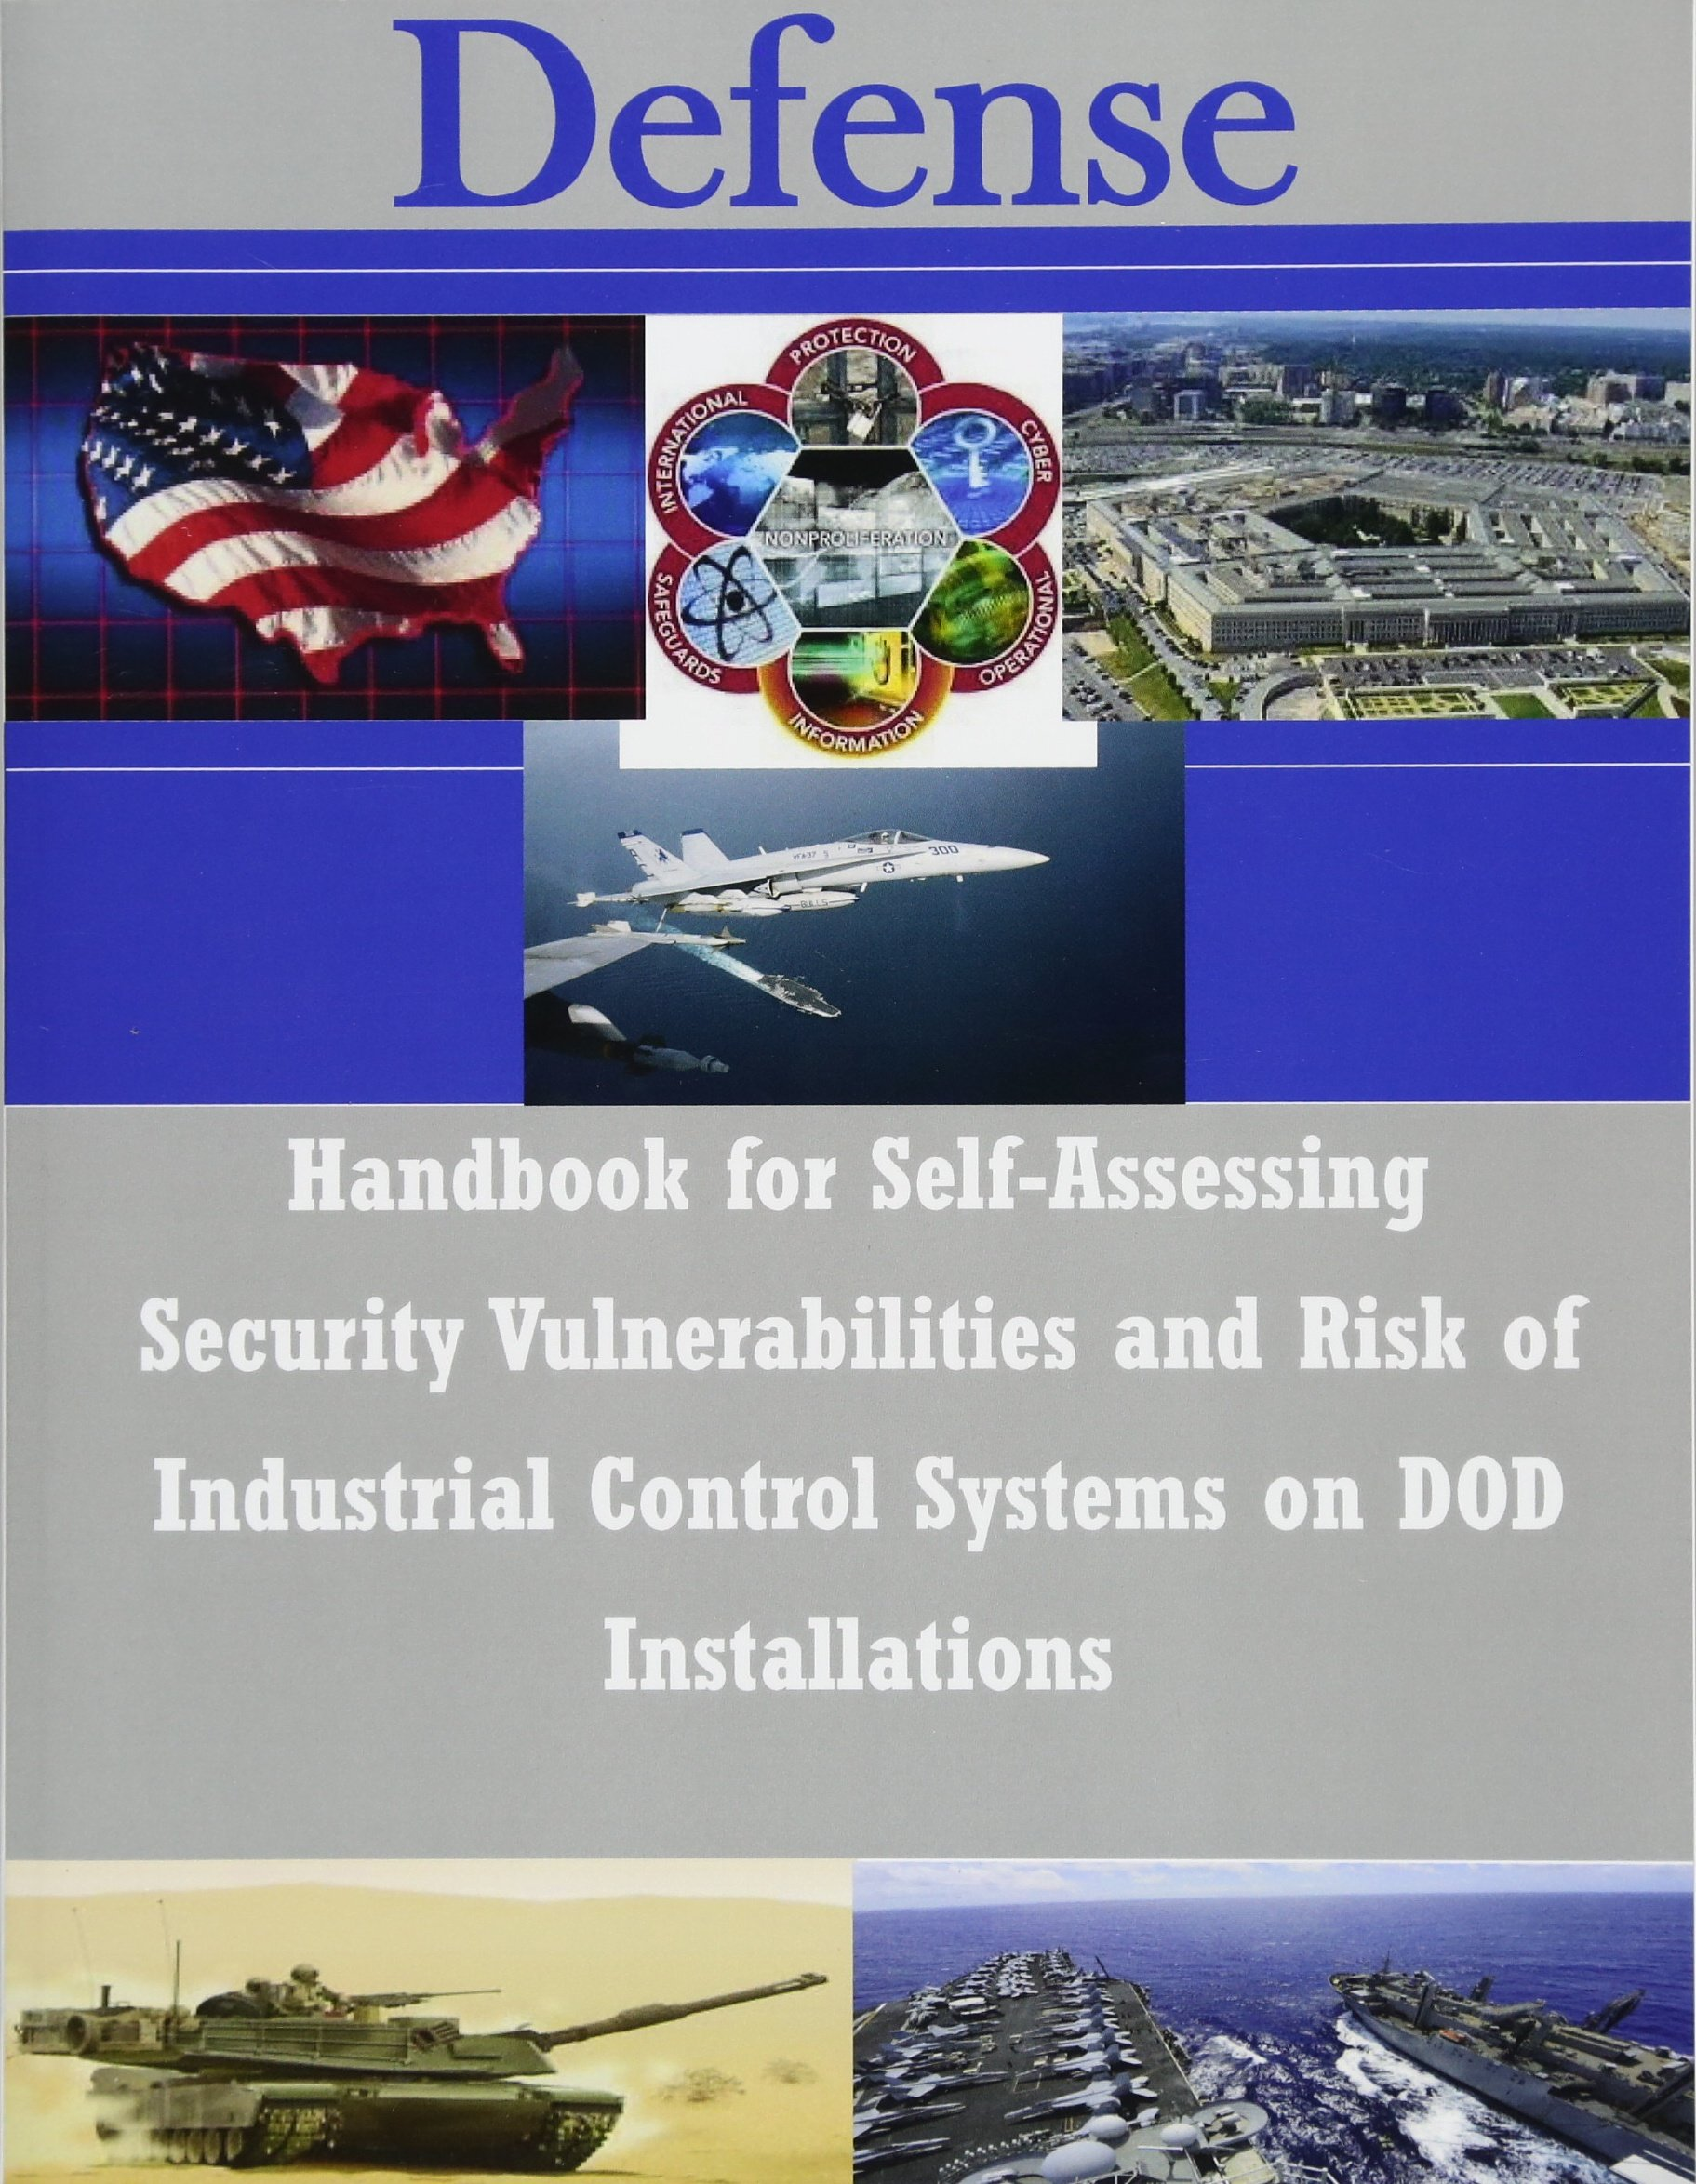 Handbook for Self-Assessing Security Vulnerabilities and Risk of Industrial Control Systems on DOD Installations ebook